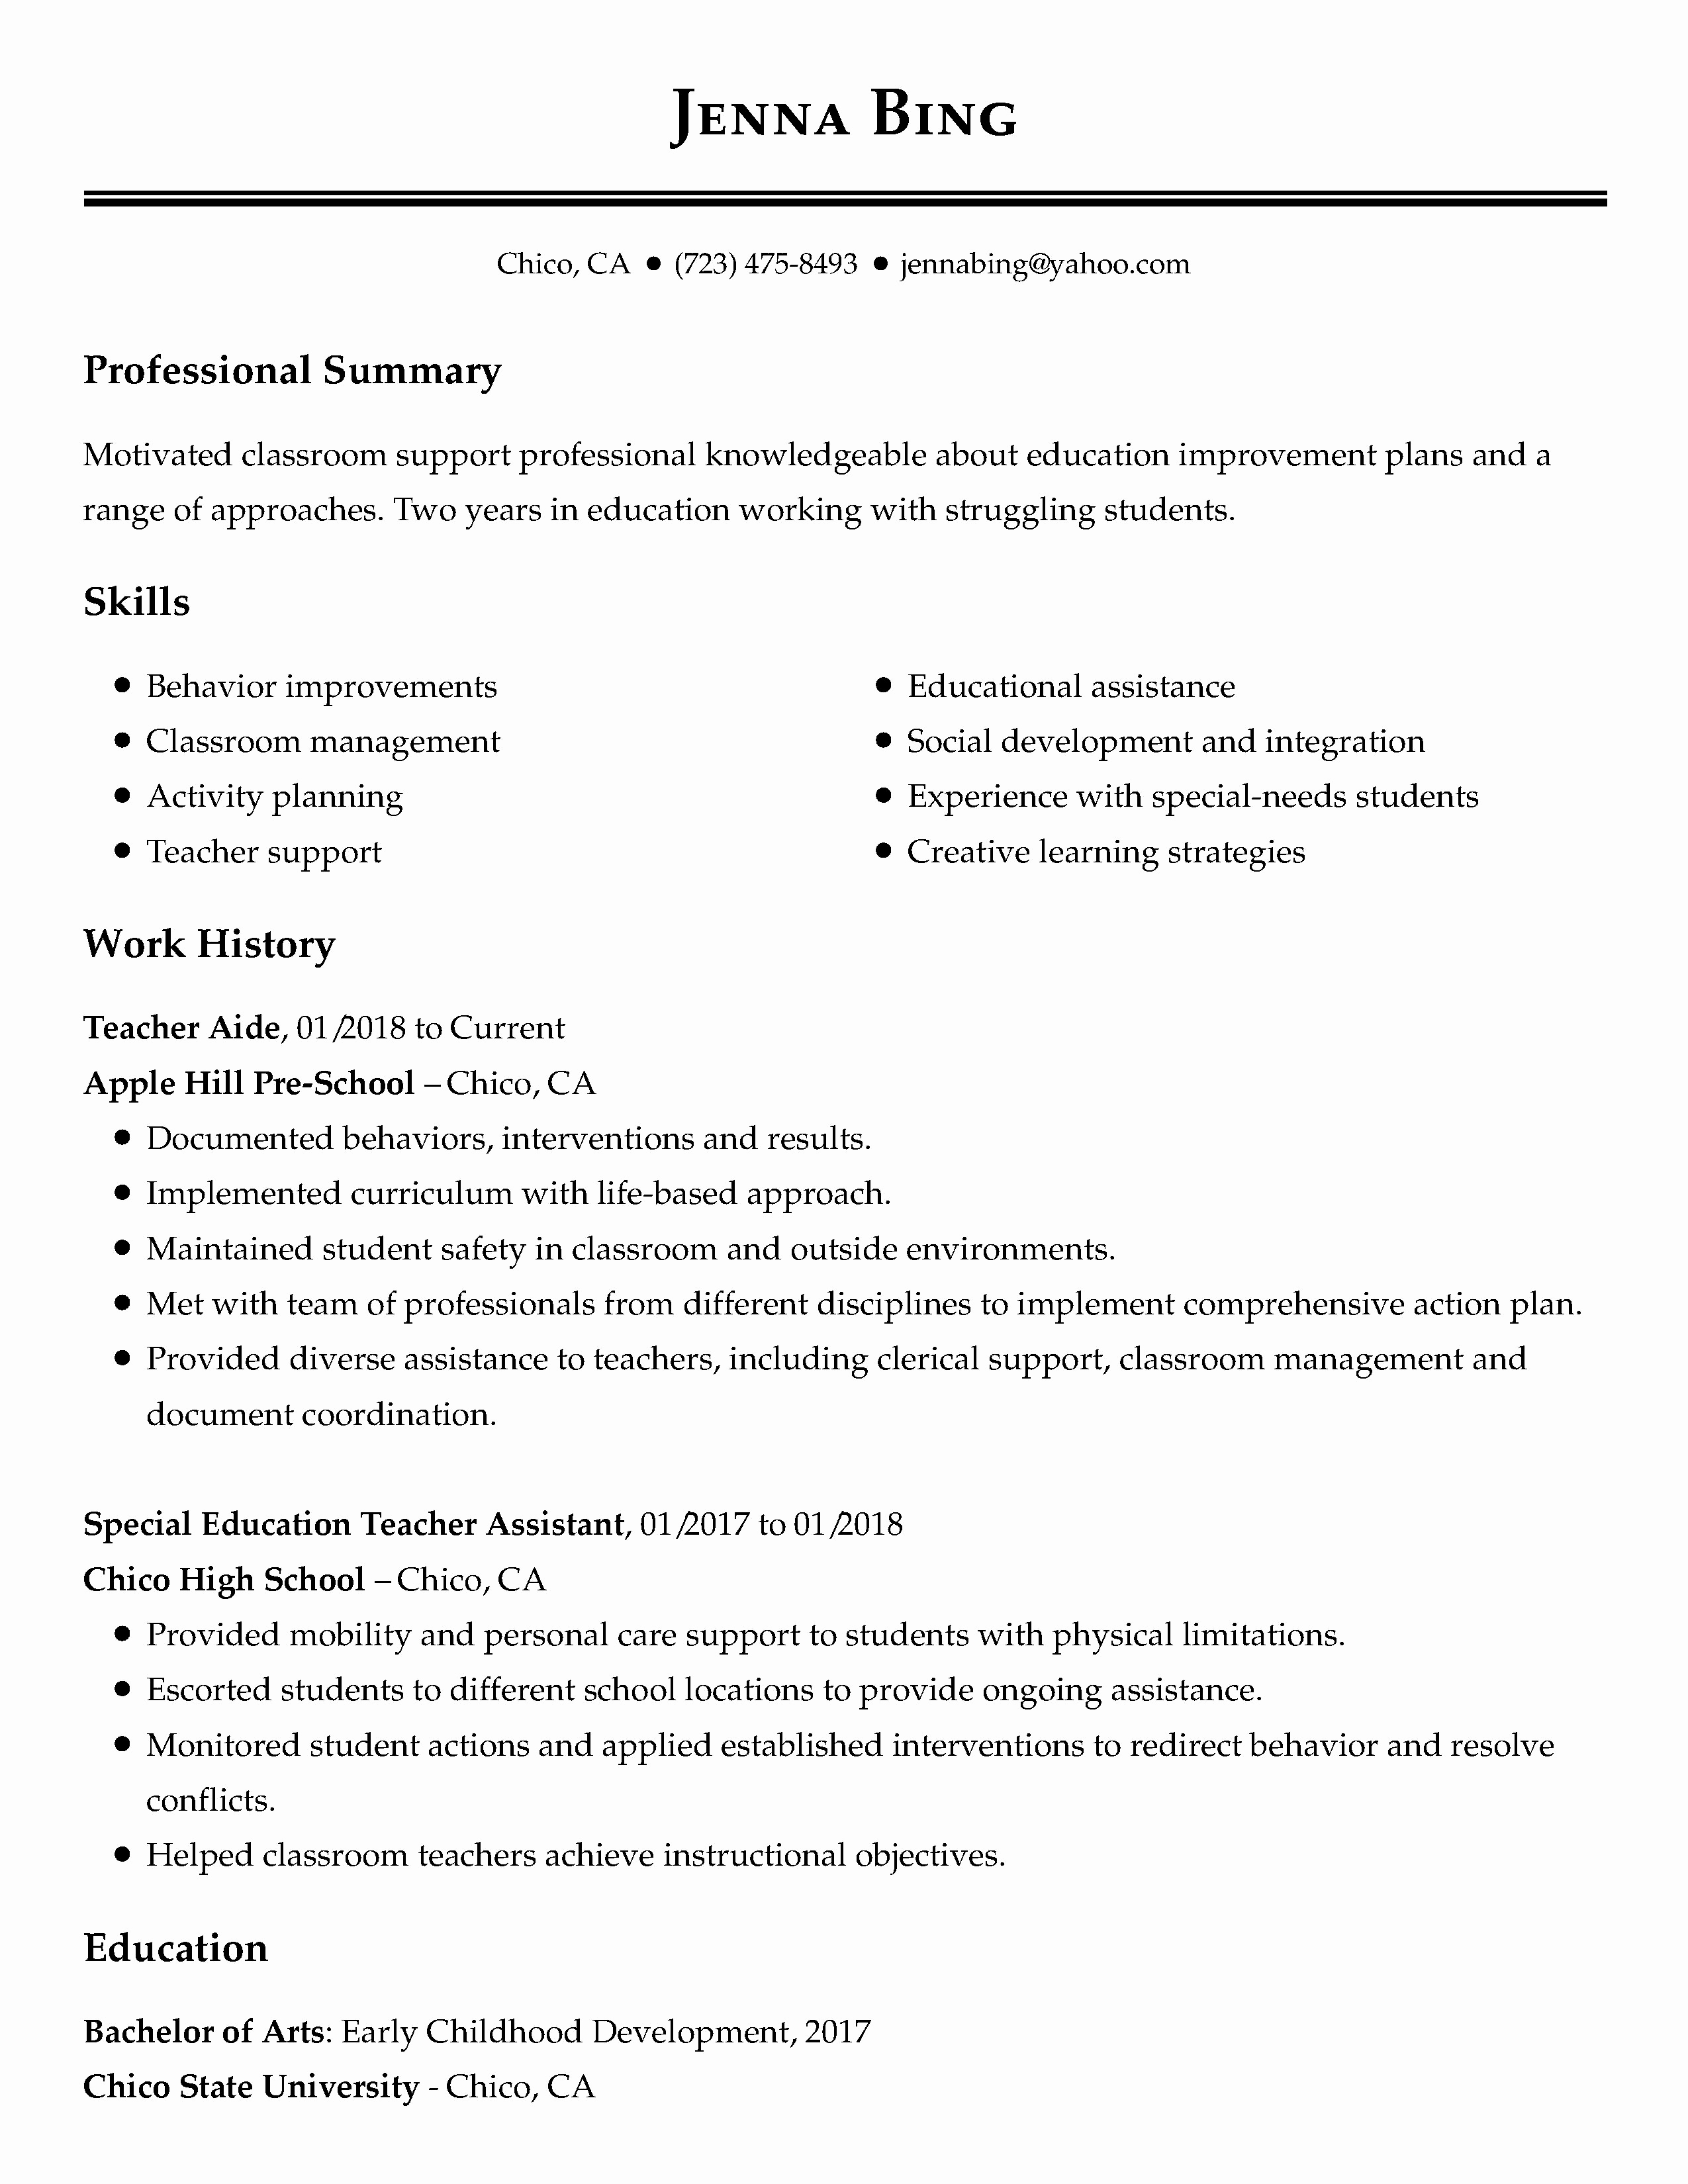 No Experience Resume Template New View 30 Samples Of Resumes by Industry & Experience Level